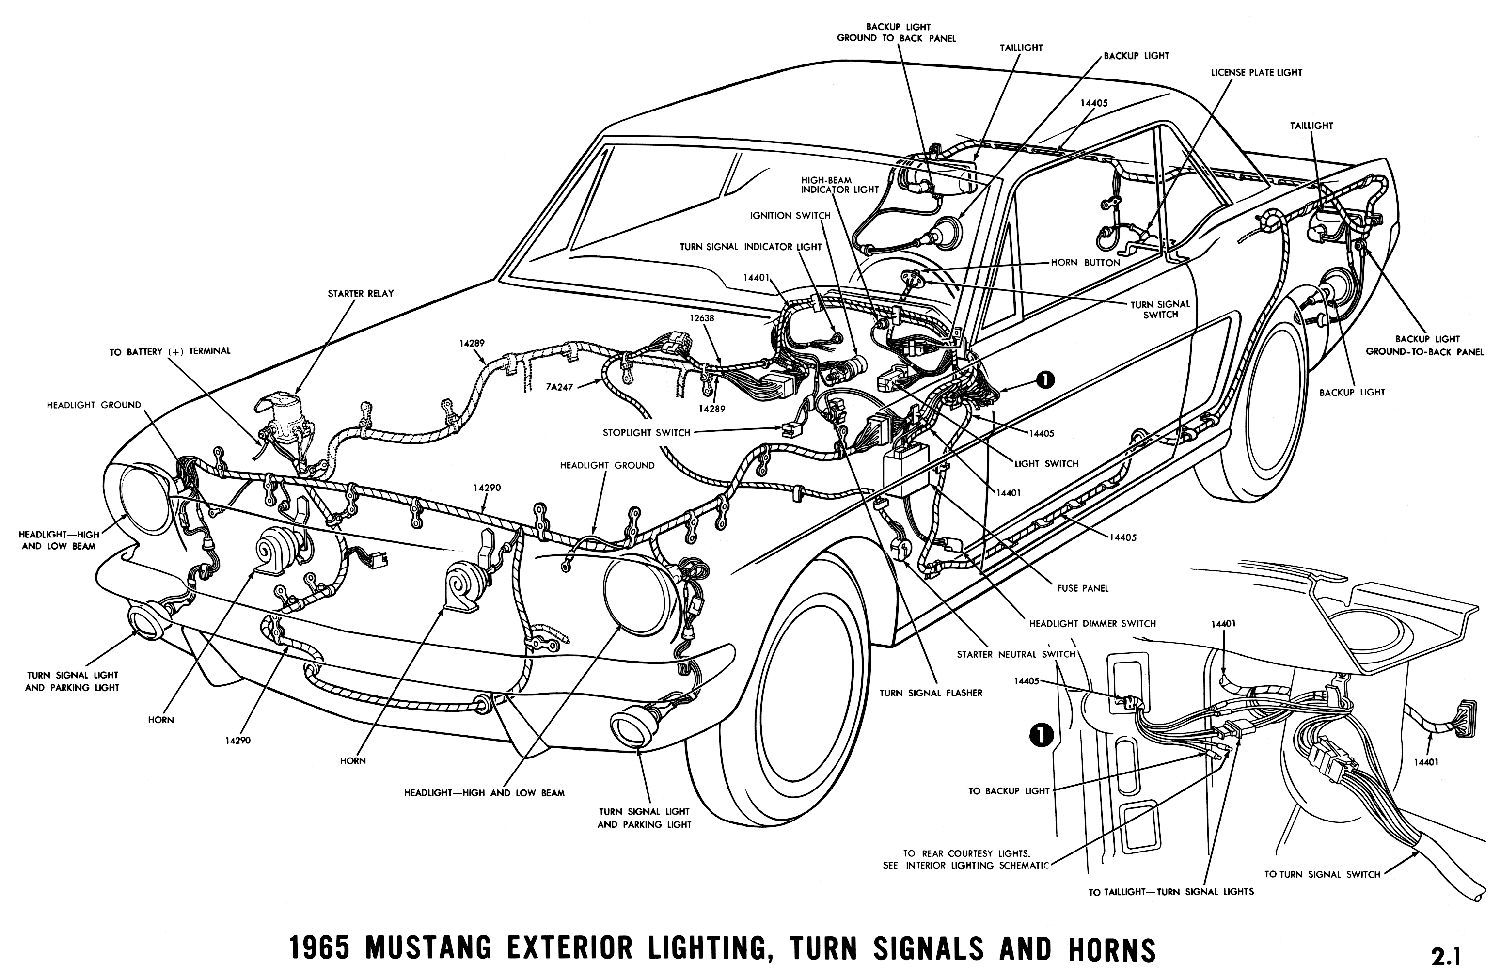 713949a72f53535feeda434261e0da35 pin by frederic sonck on wiring pinterest ford mustang, ford 1965 mustang wiring diagram at bayanpartner.co